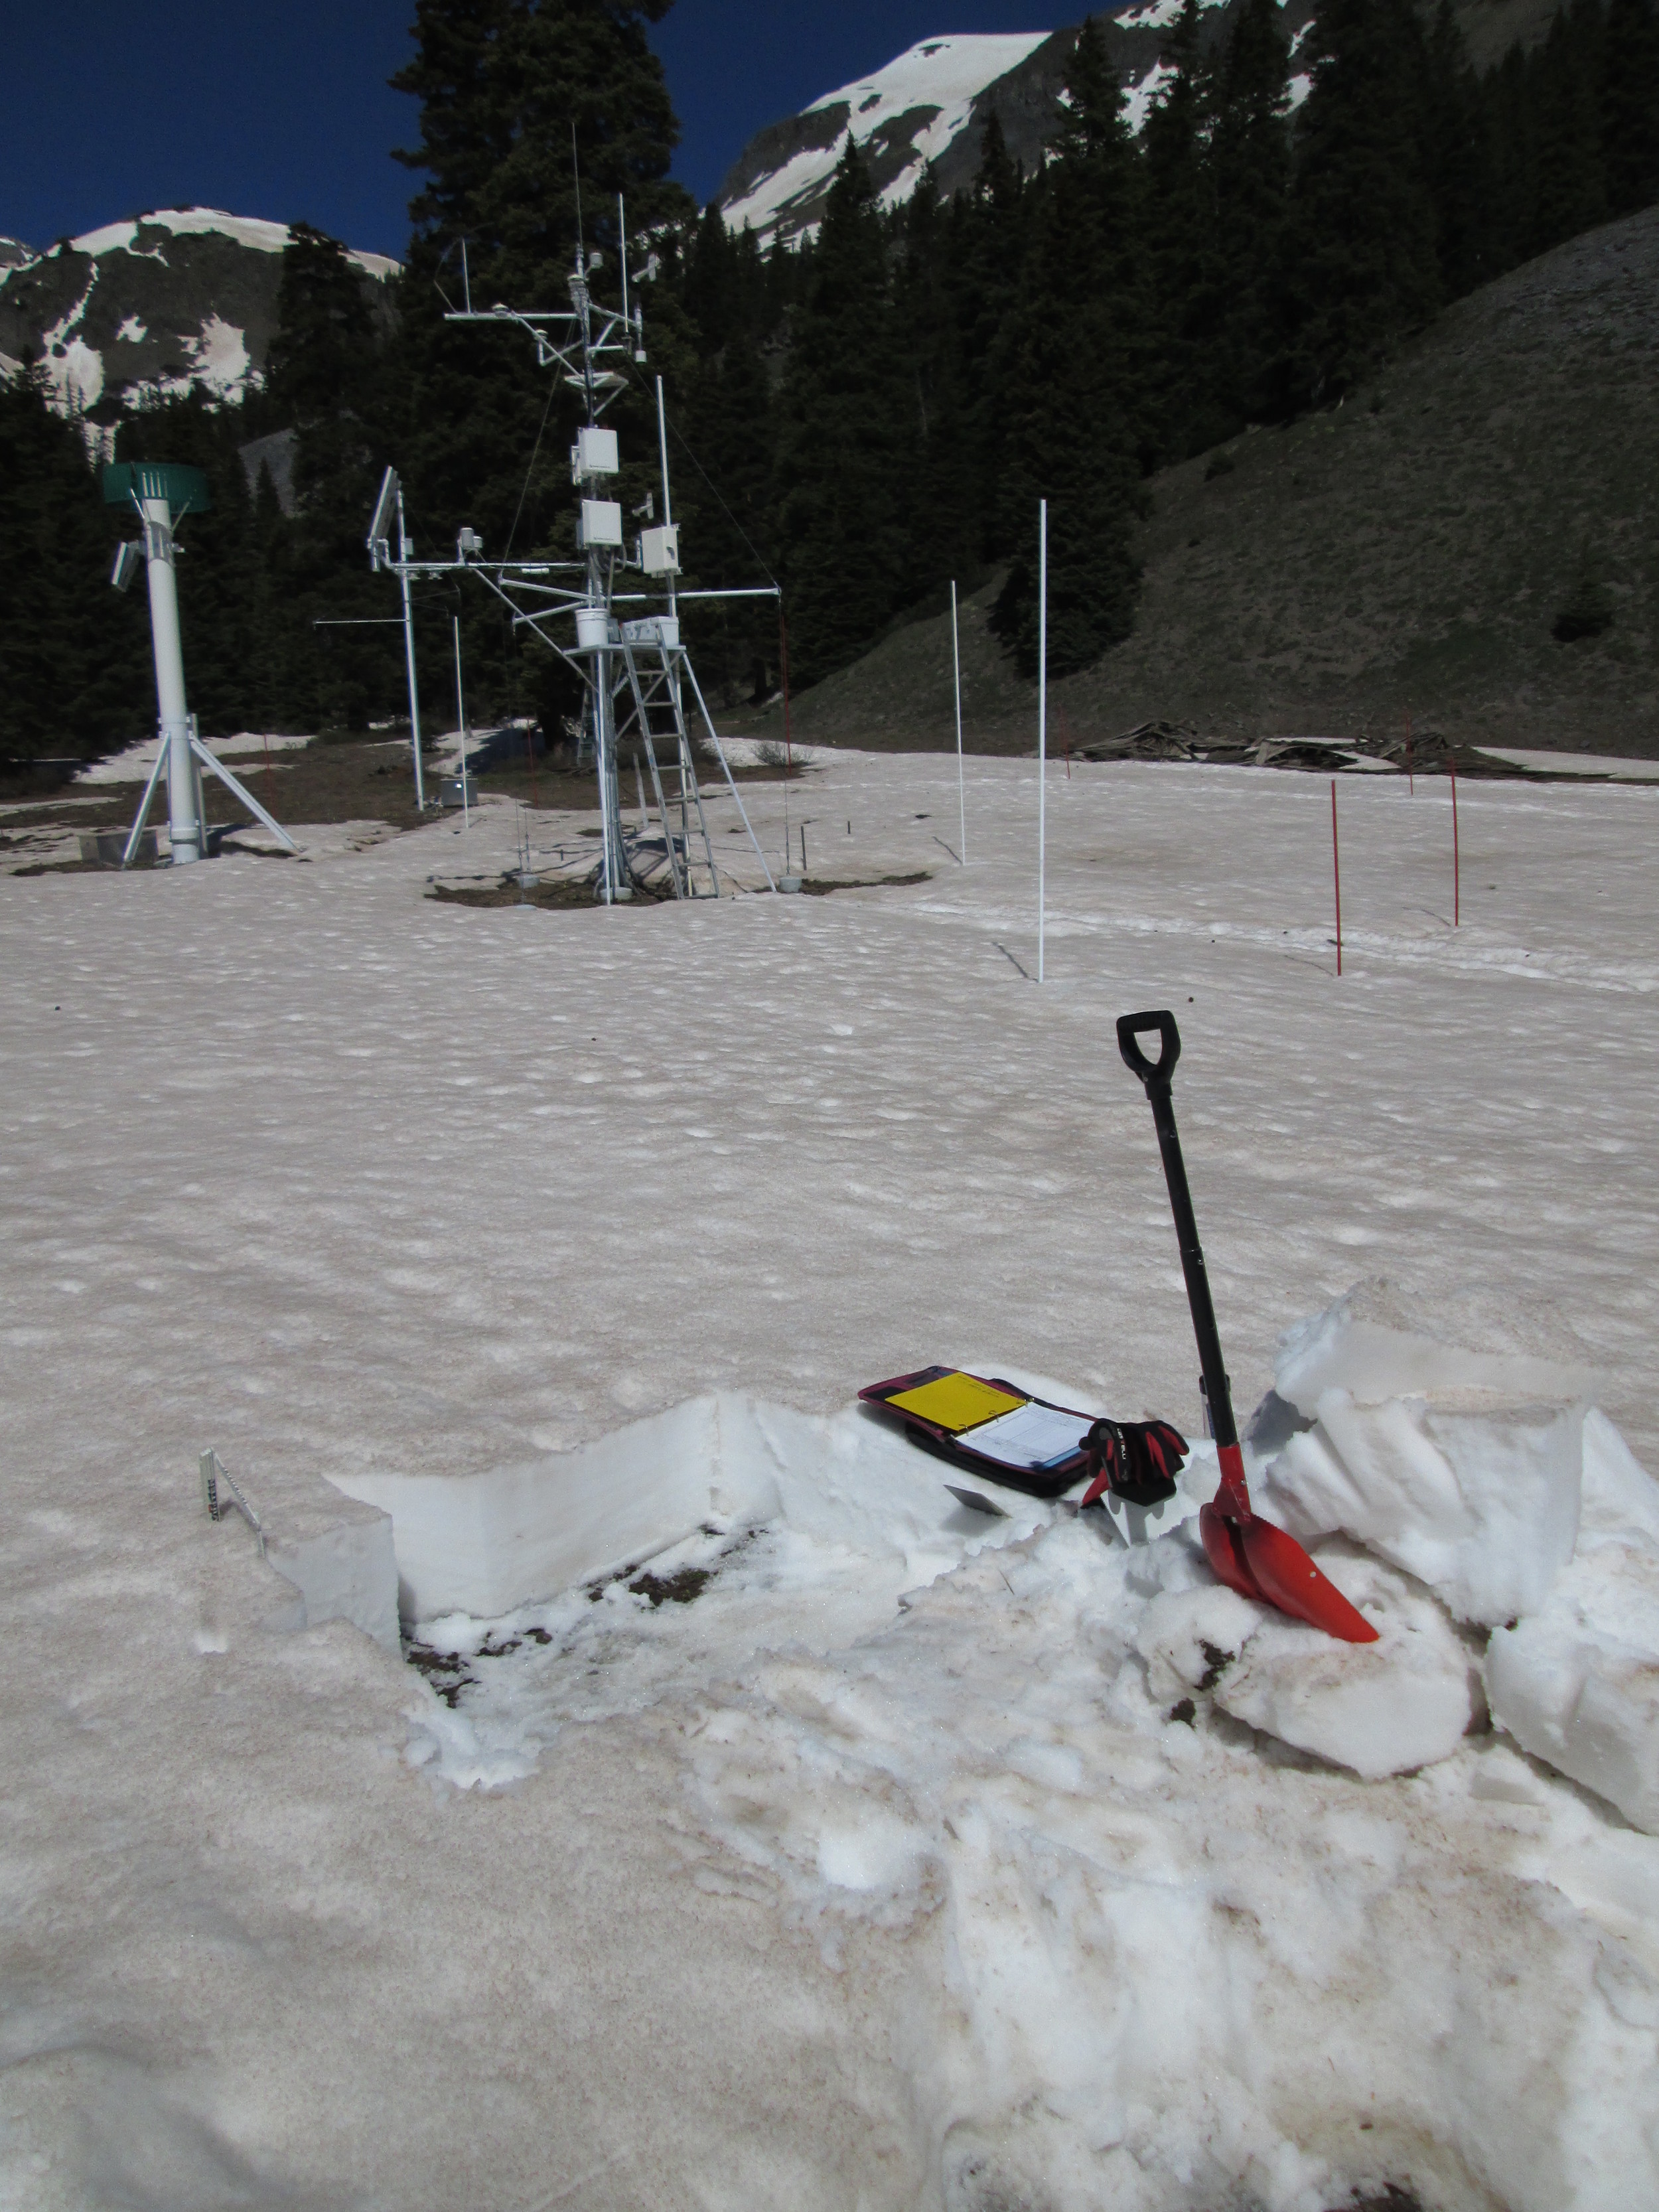 """Our final snow profile of the season at Swamp Angel Study Plot (SASP) on June 5 documented the loss of almost 30"""" (75 cm) of snow depth and 13.9"""" (352 mm) of SWE since the preceding snow profile on May 28. Even with a few lingering inches of clean snowfall from the Memorial Day weekend storm, and that brief restoration of high snow albedo, snowmelt had averaged 1.7"""" (44mm) of SWE per day during that 8-day interval. Snowmelt around the instrument mast was somewhat more rapid and had already revealed bare ground. The remaining snowcover and 5"""" of SWE seen in this snow pit was all gone within 48 hours."""